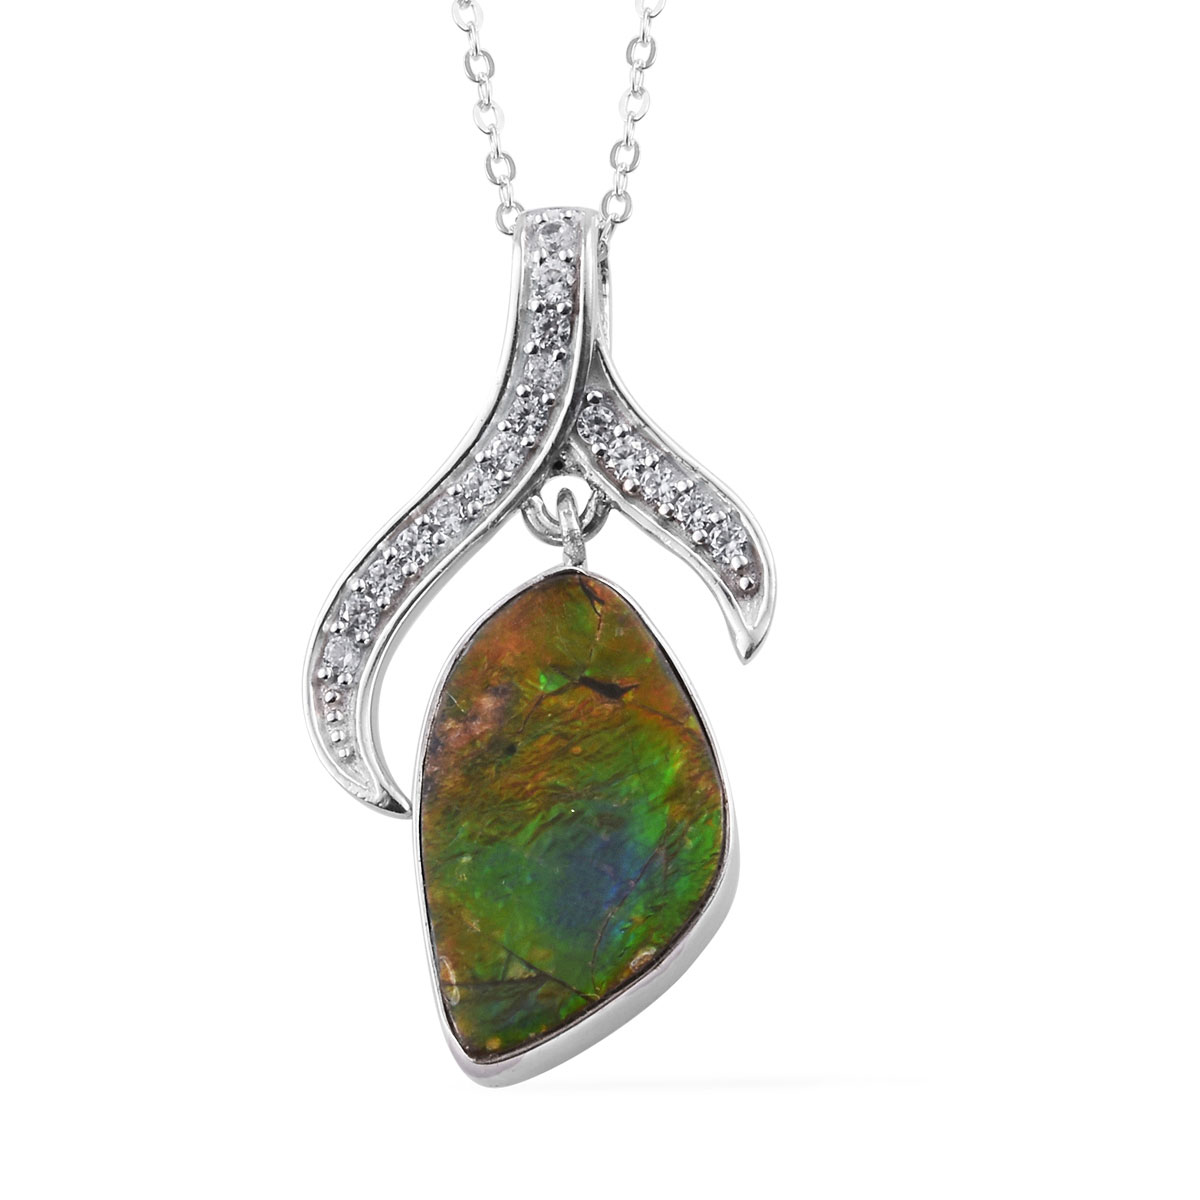 bc923b9cd Canadian Ammolite, Zircon Pendant Necklace (20 in) in Platinum Over  Sterling Silver 0.33 ...